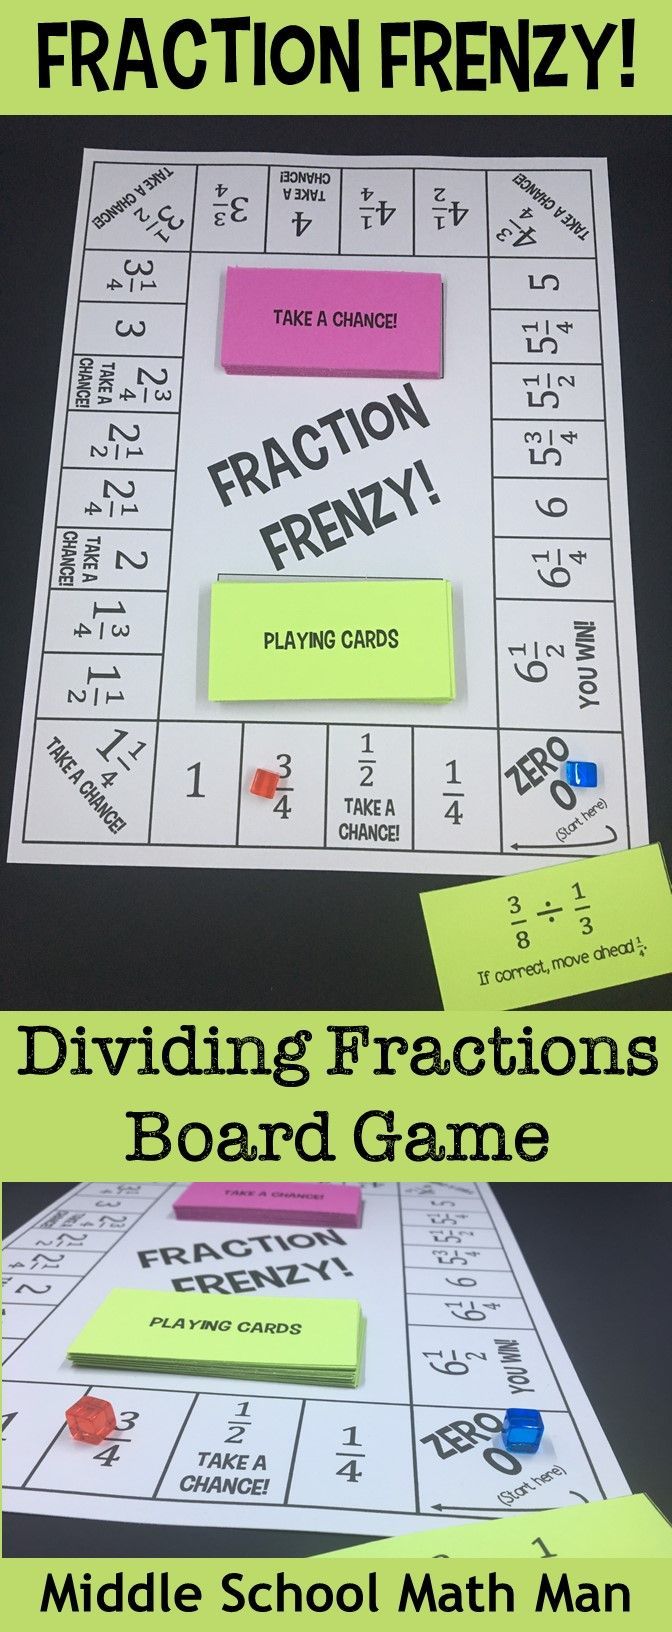 Fraction Frenzy! A Dividing Fractions Board Game | Math